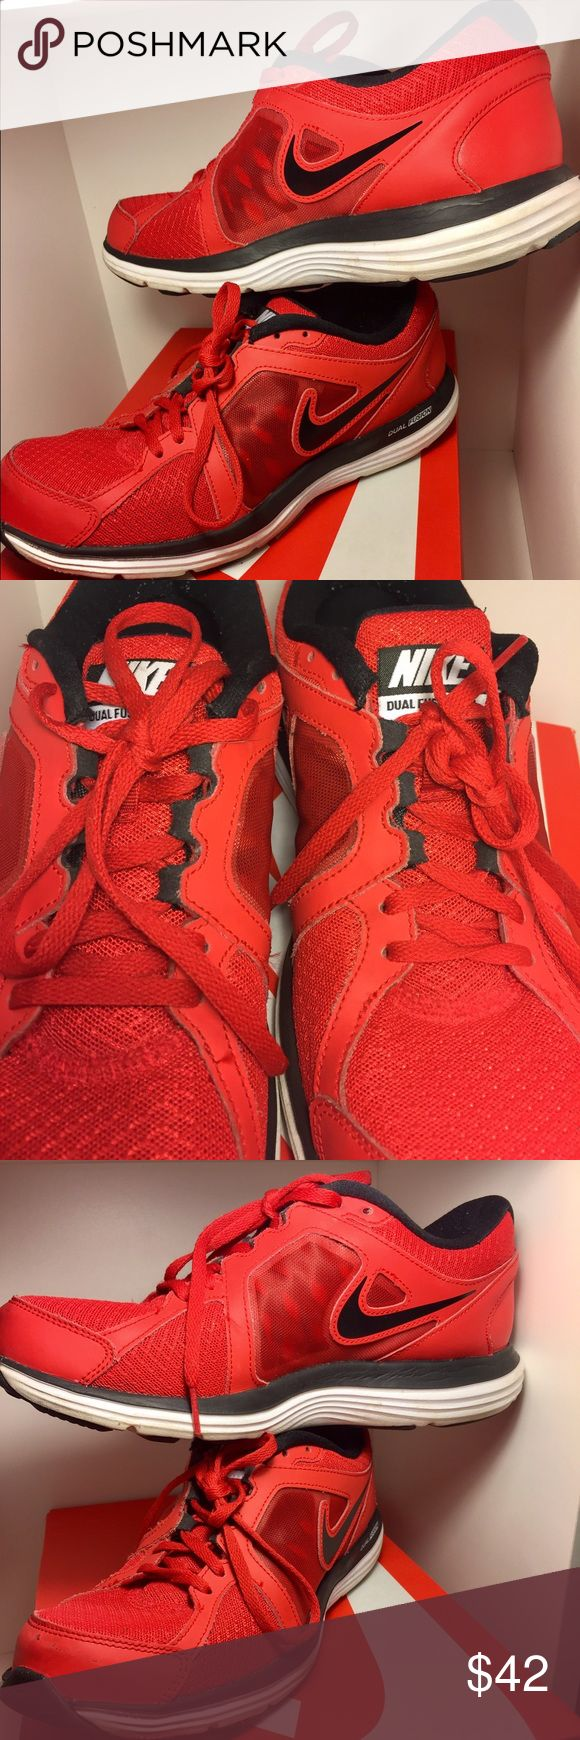 MEN's NIKE DUAL FUSION Athletic Shoes Pre-owned Men's Athletic Shoe Red & Black DUAL FUSION has some scuffing on front otherwise in overall good shape Nike Shoes Athletic Shoes